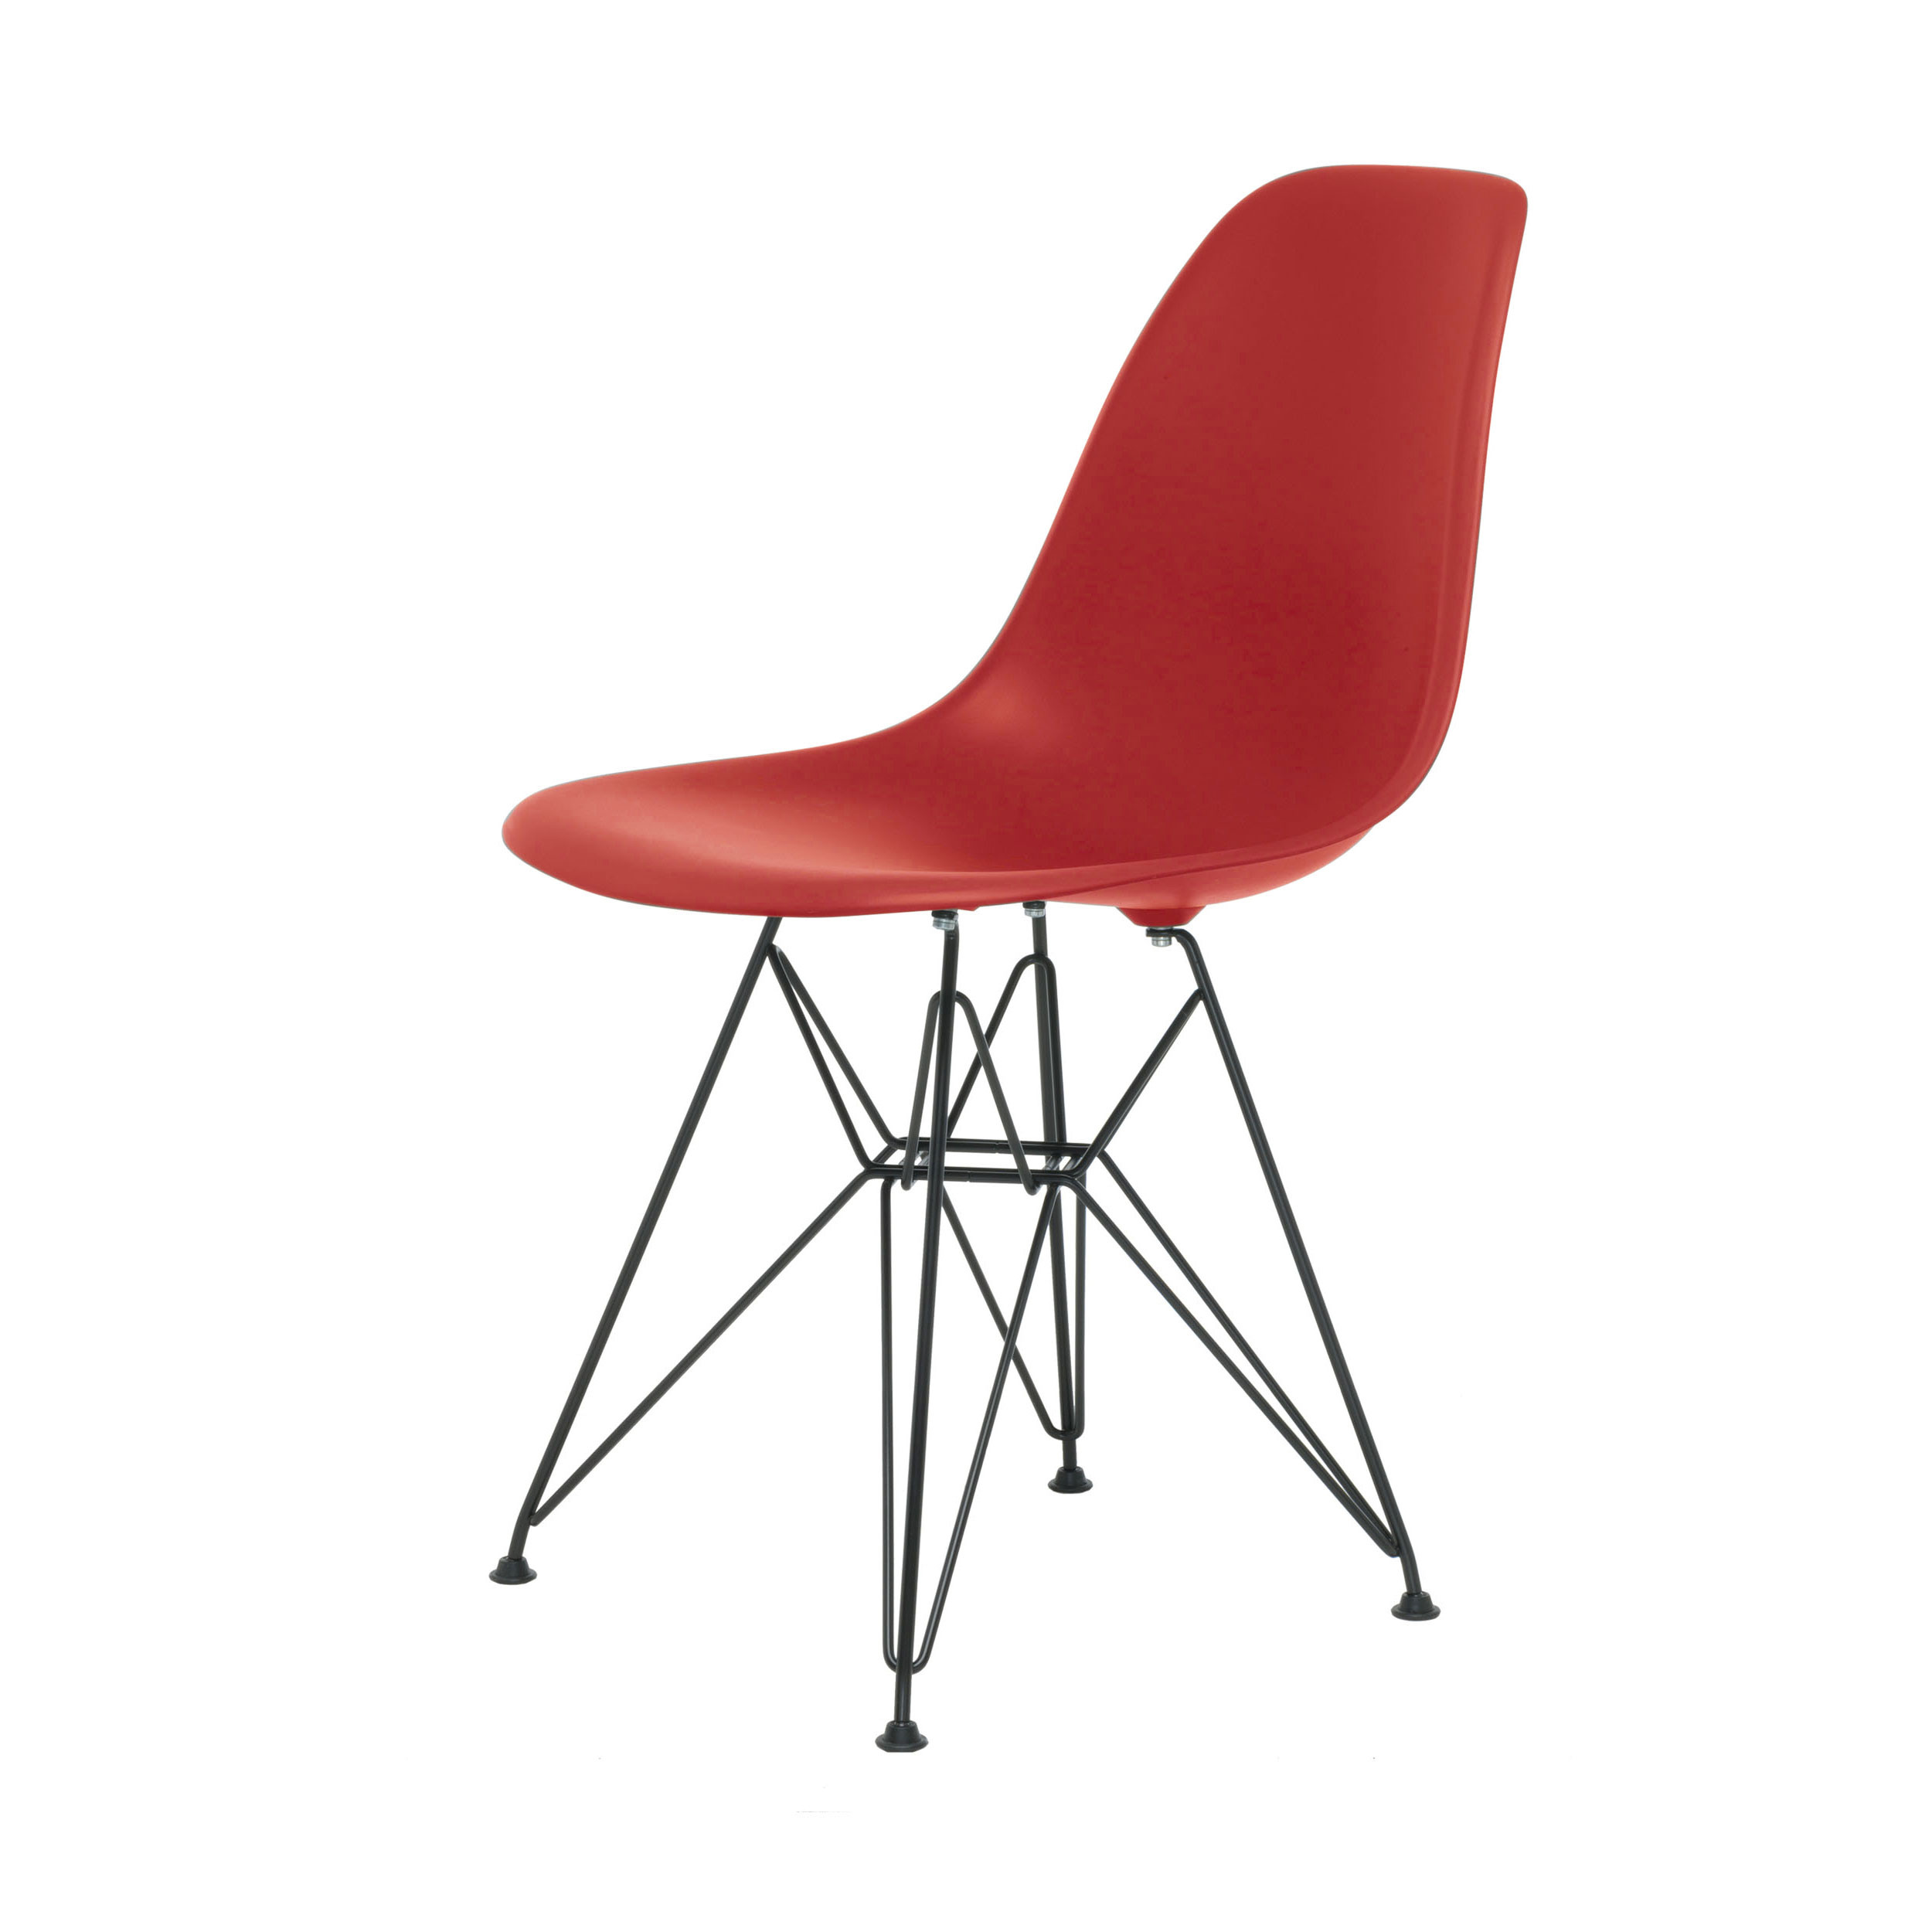 eames plastic side chair stuhl dsr mit filzgleitern oxidrot schwarz neue ma e. Black Bedroom Furniture Sets. Home Design Ideas